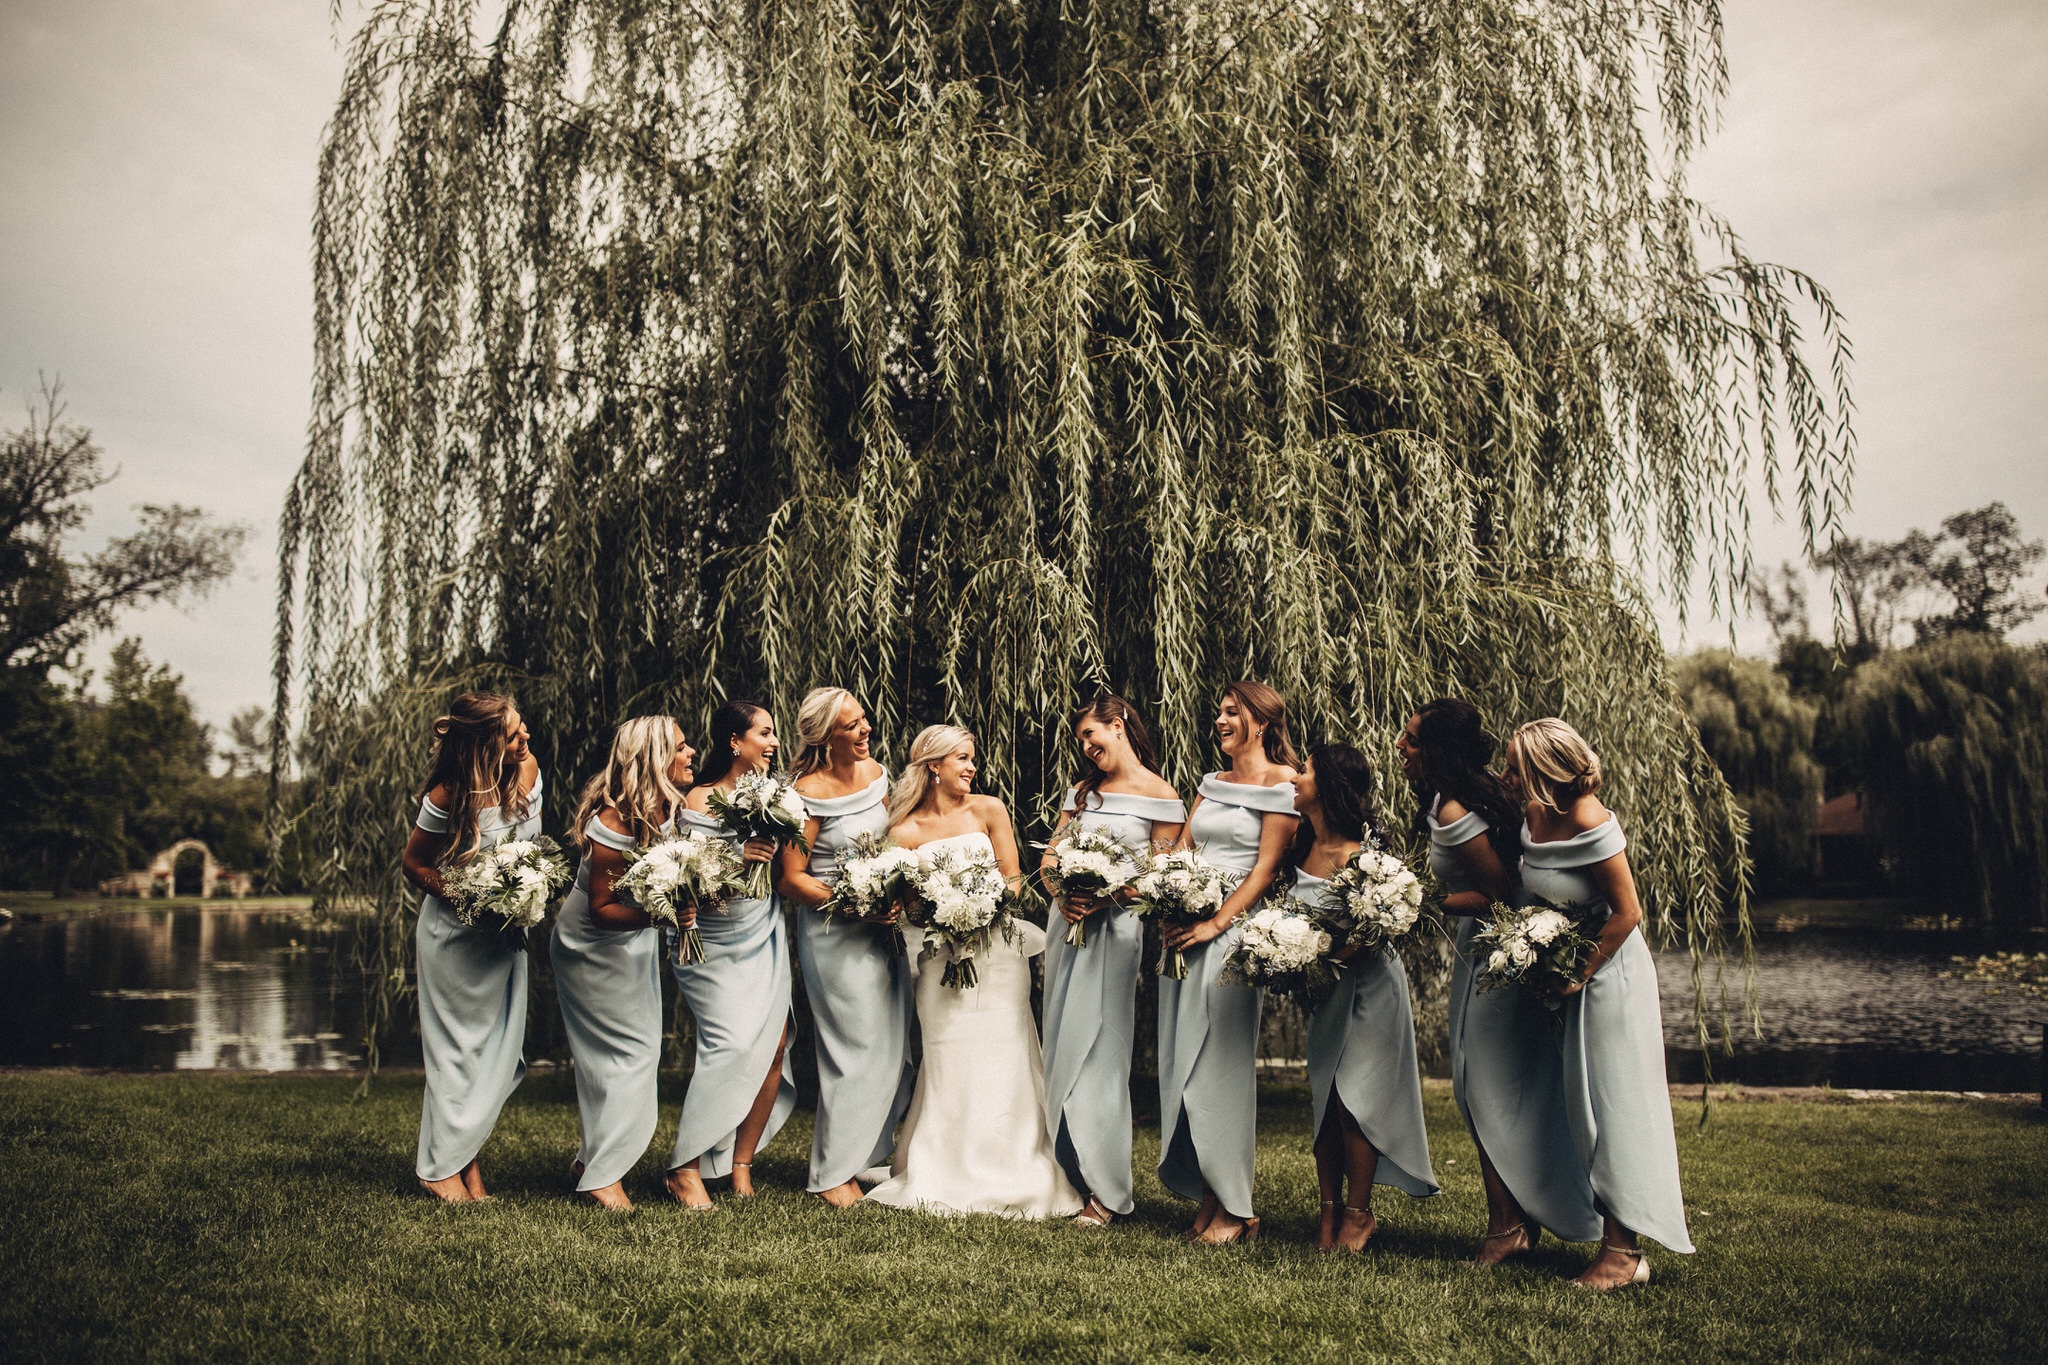 Bridesmaid Photos at Gervasi Vineyard